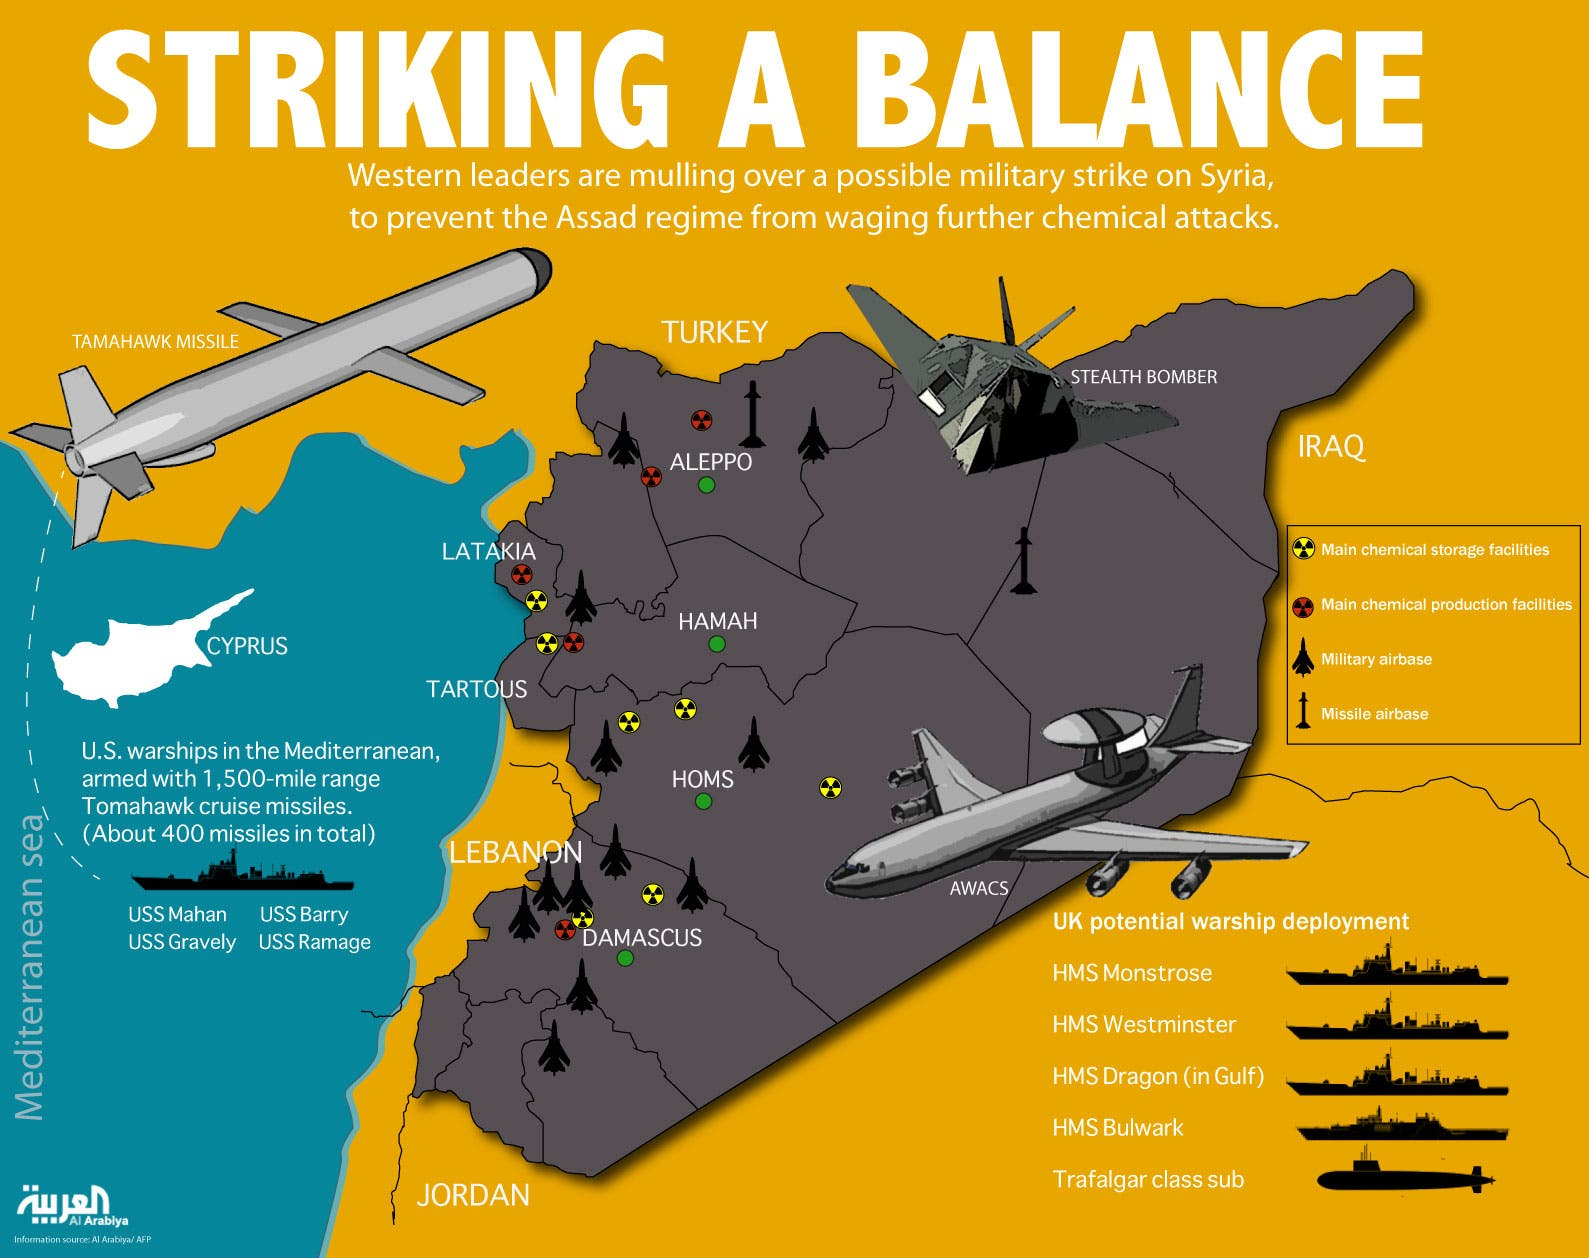 Infographic: Striking a balance (Design by Farwa Rizwan / Al Arabiya English)